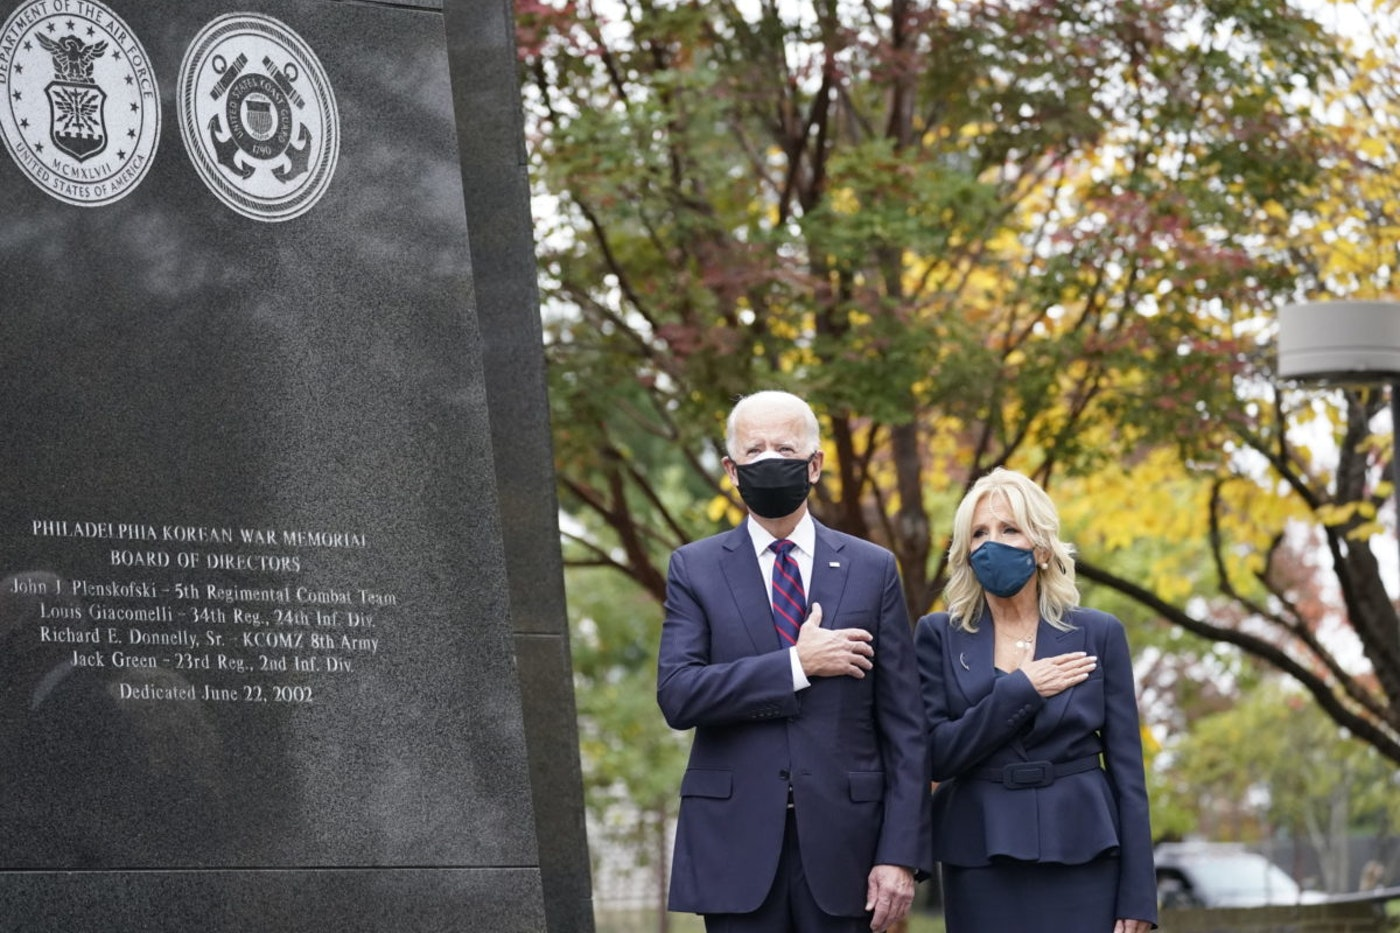 President-elect Joe Biden and Jill Biden, attend a service at the Philadelphia Korean War Memorial at Penn's Landing on Veterans Day, Wednesday, Nov. 11, 2020, in Philadelphia. (AP Photo/Alex Brandon)